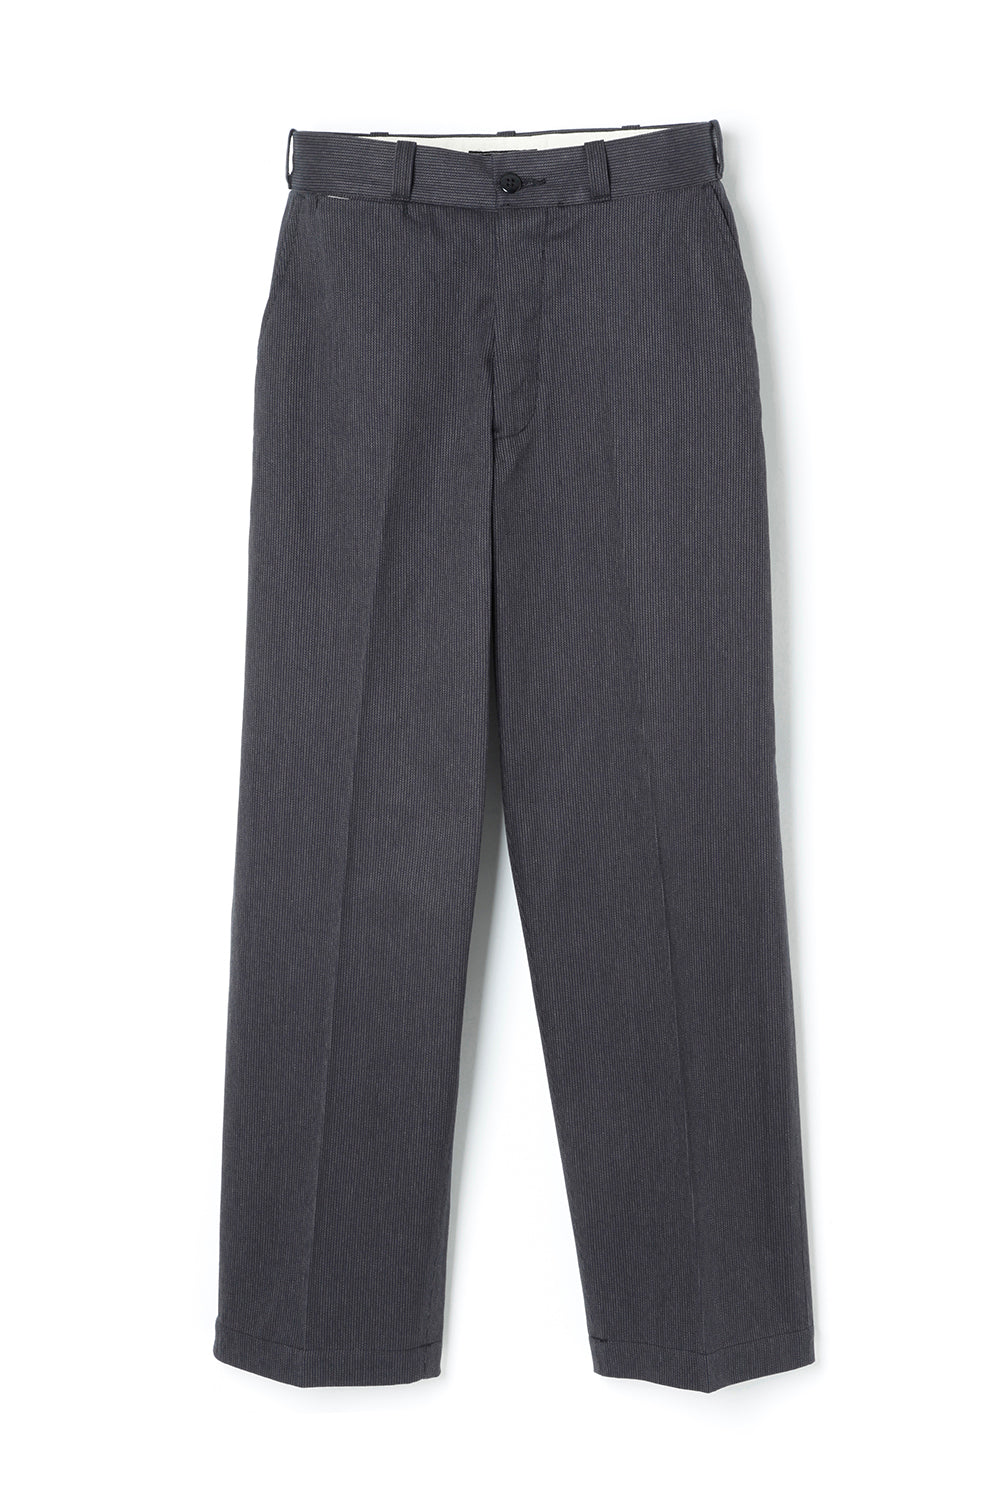 Lot.659 Work Pants